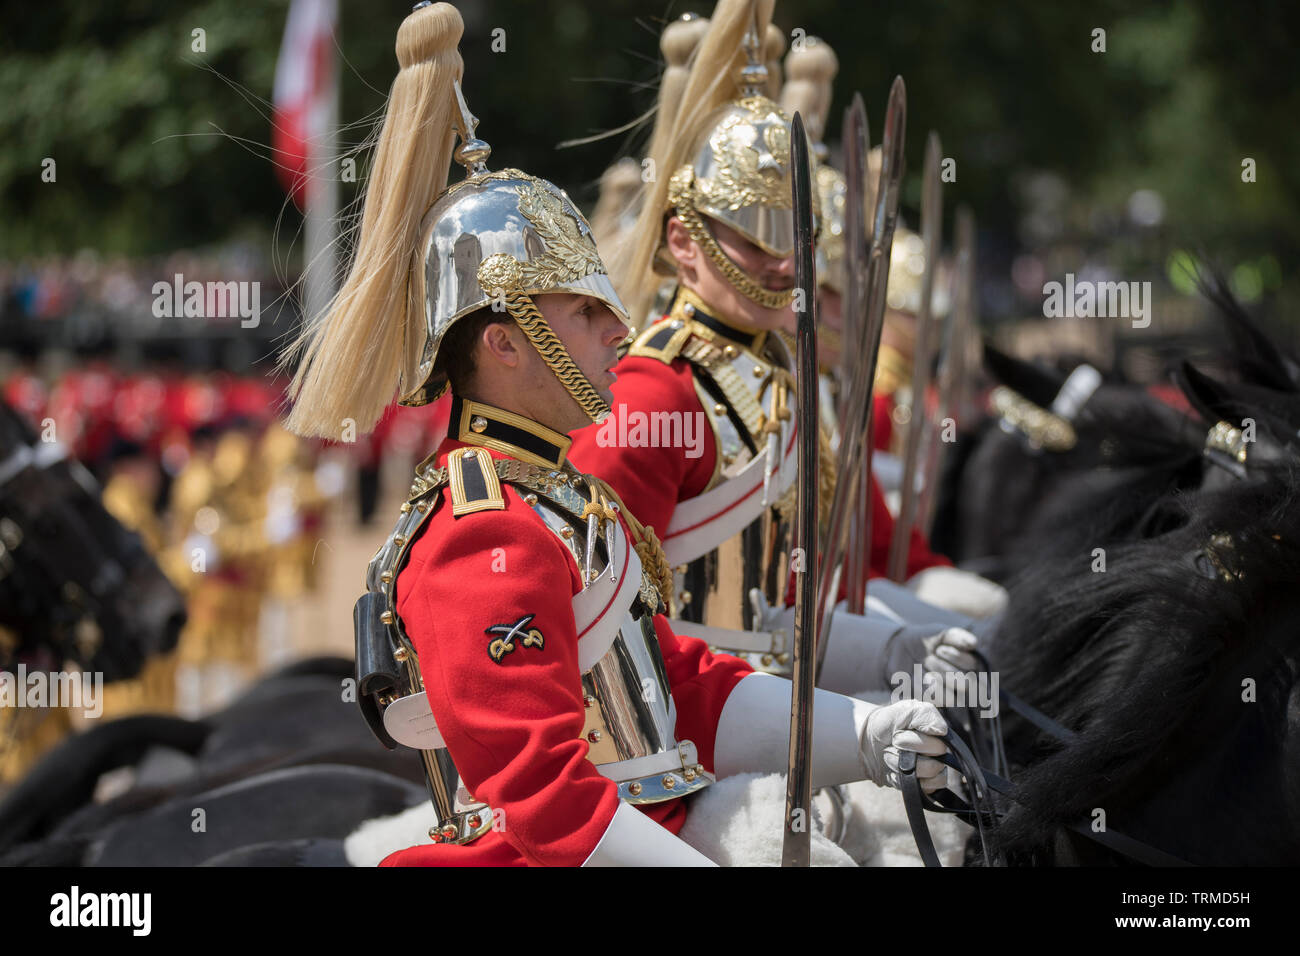 Horse Guards Parade. 8th June 2019. Trooping the Colour, the Queen's Birthday Parade, London, UK. Credit: Malcolm Park/Alamy Stock Photo